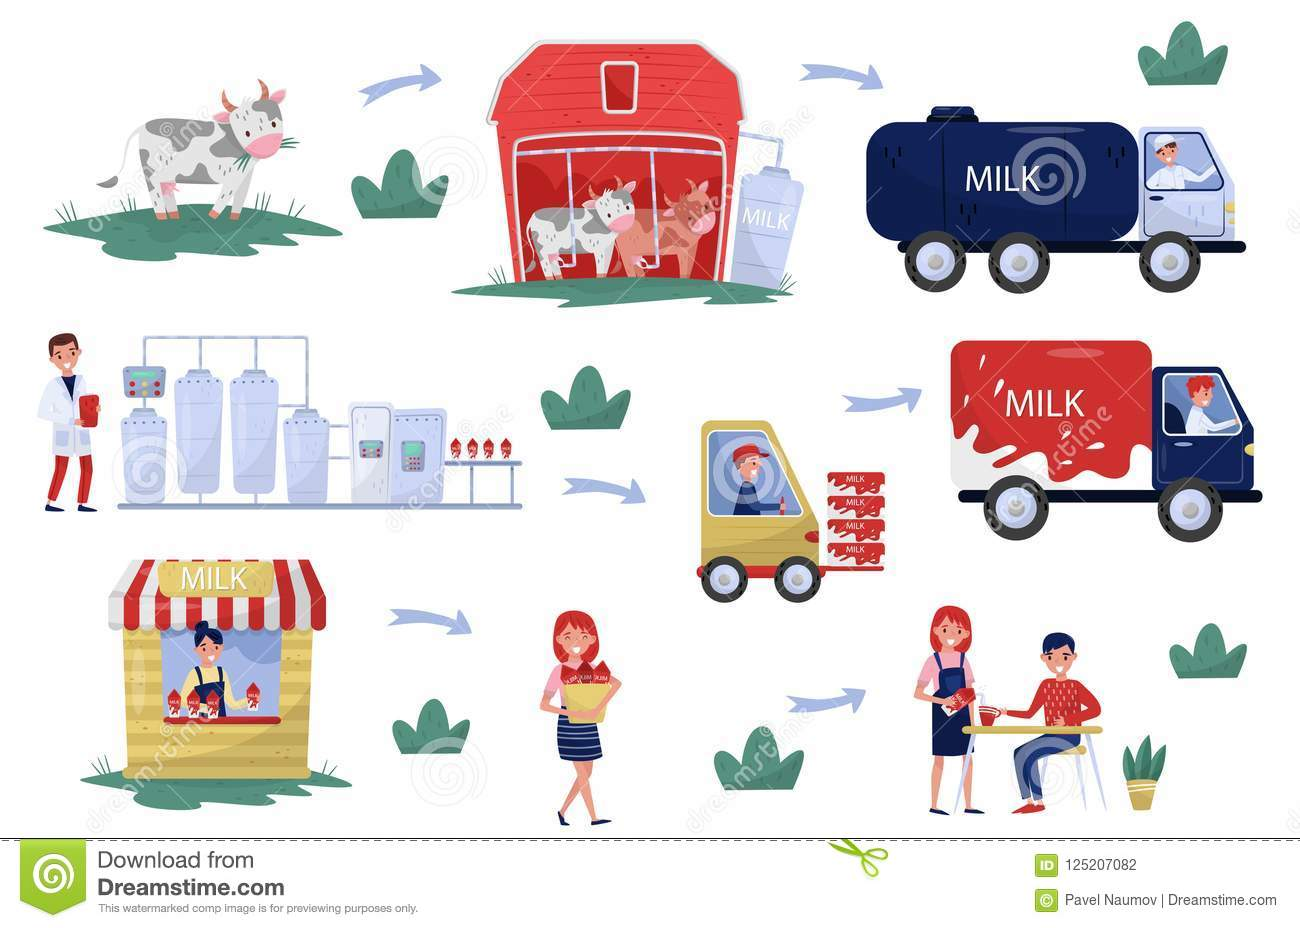 Flat Vector Illustration Showing Production And Processing